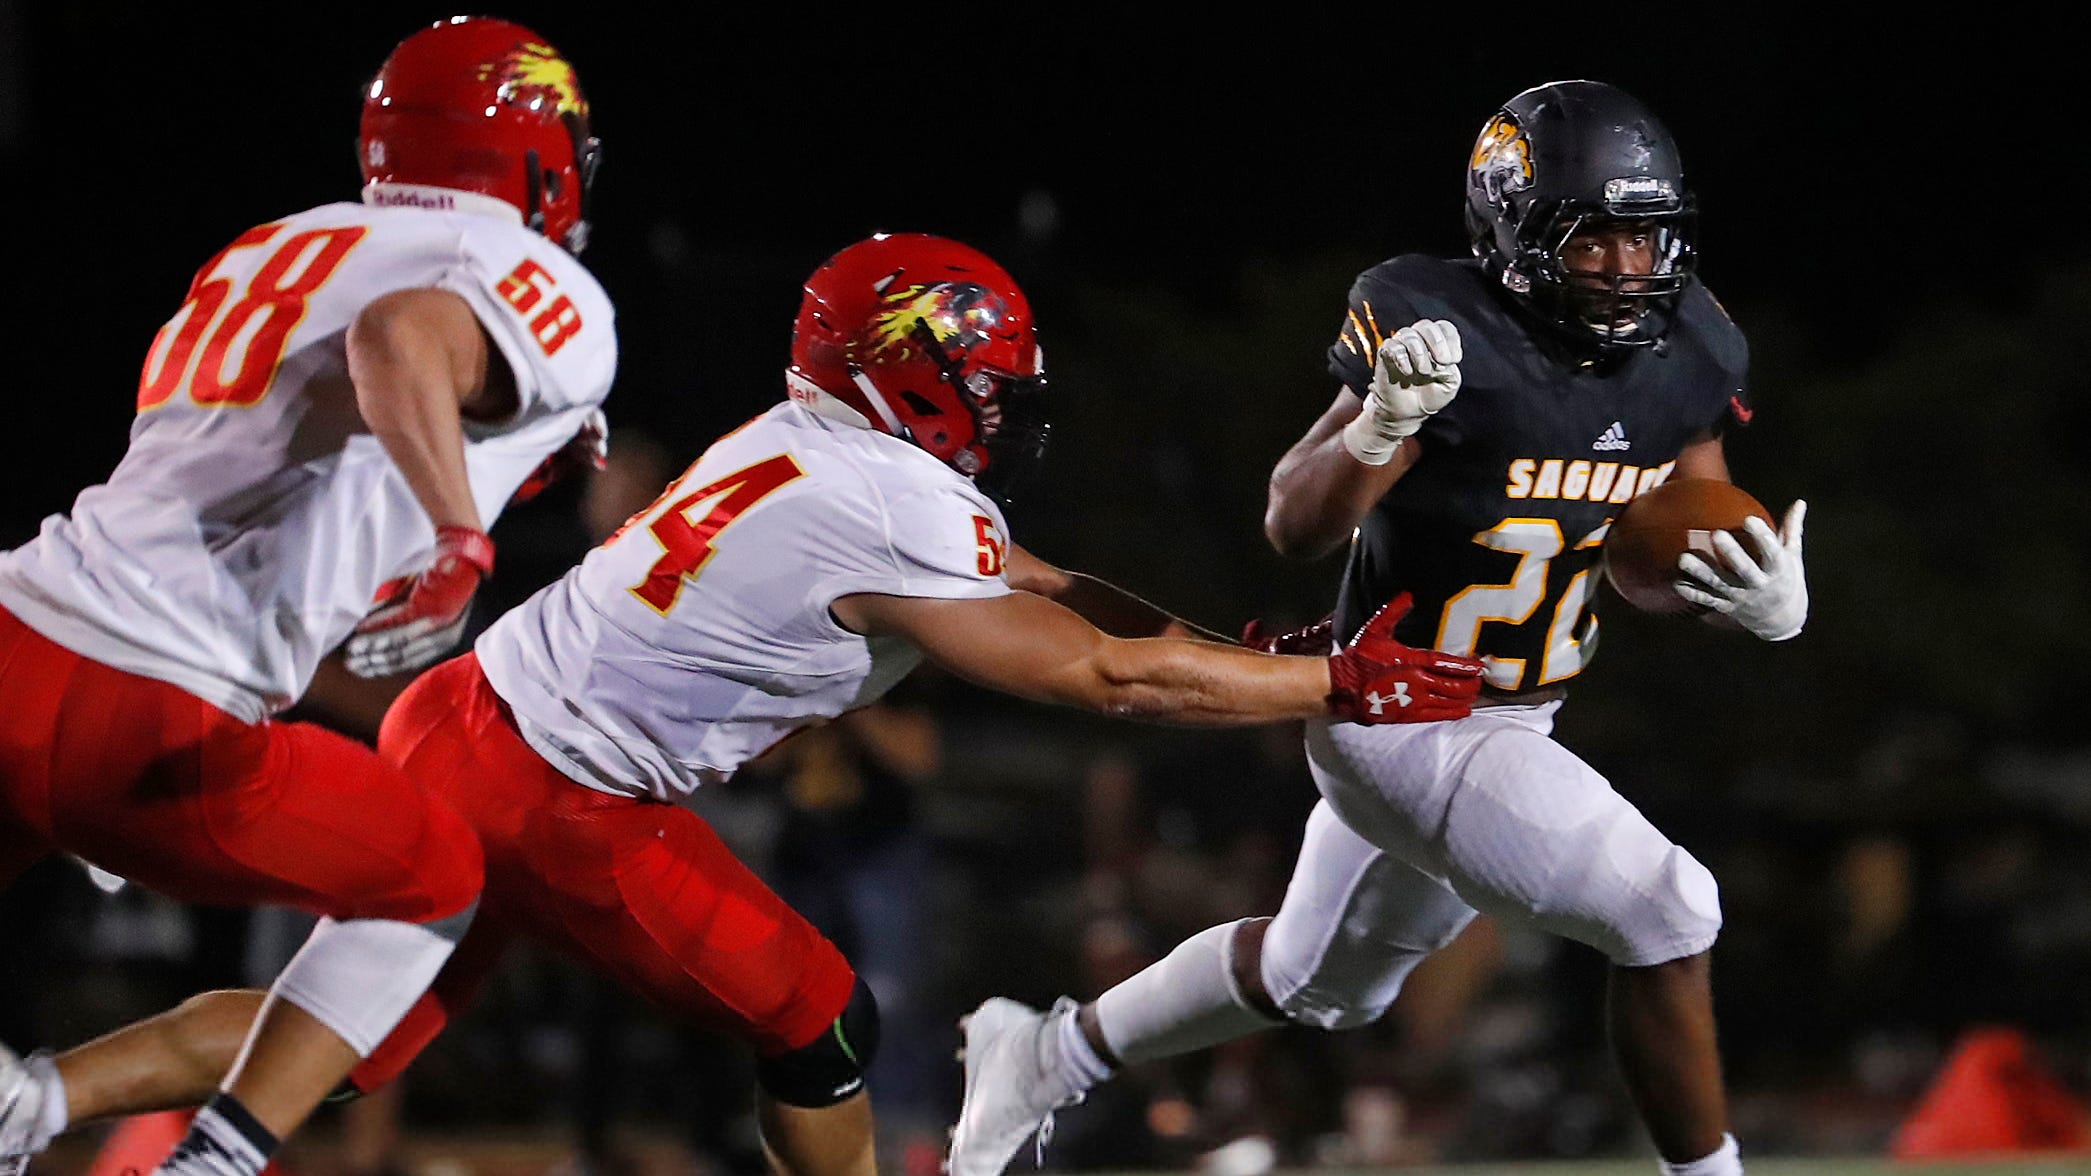 Saguaro Bounces Back To Beat Chaparral In Renewal Of Rivalry